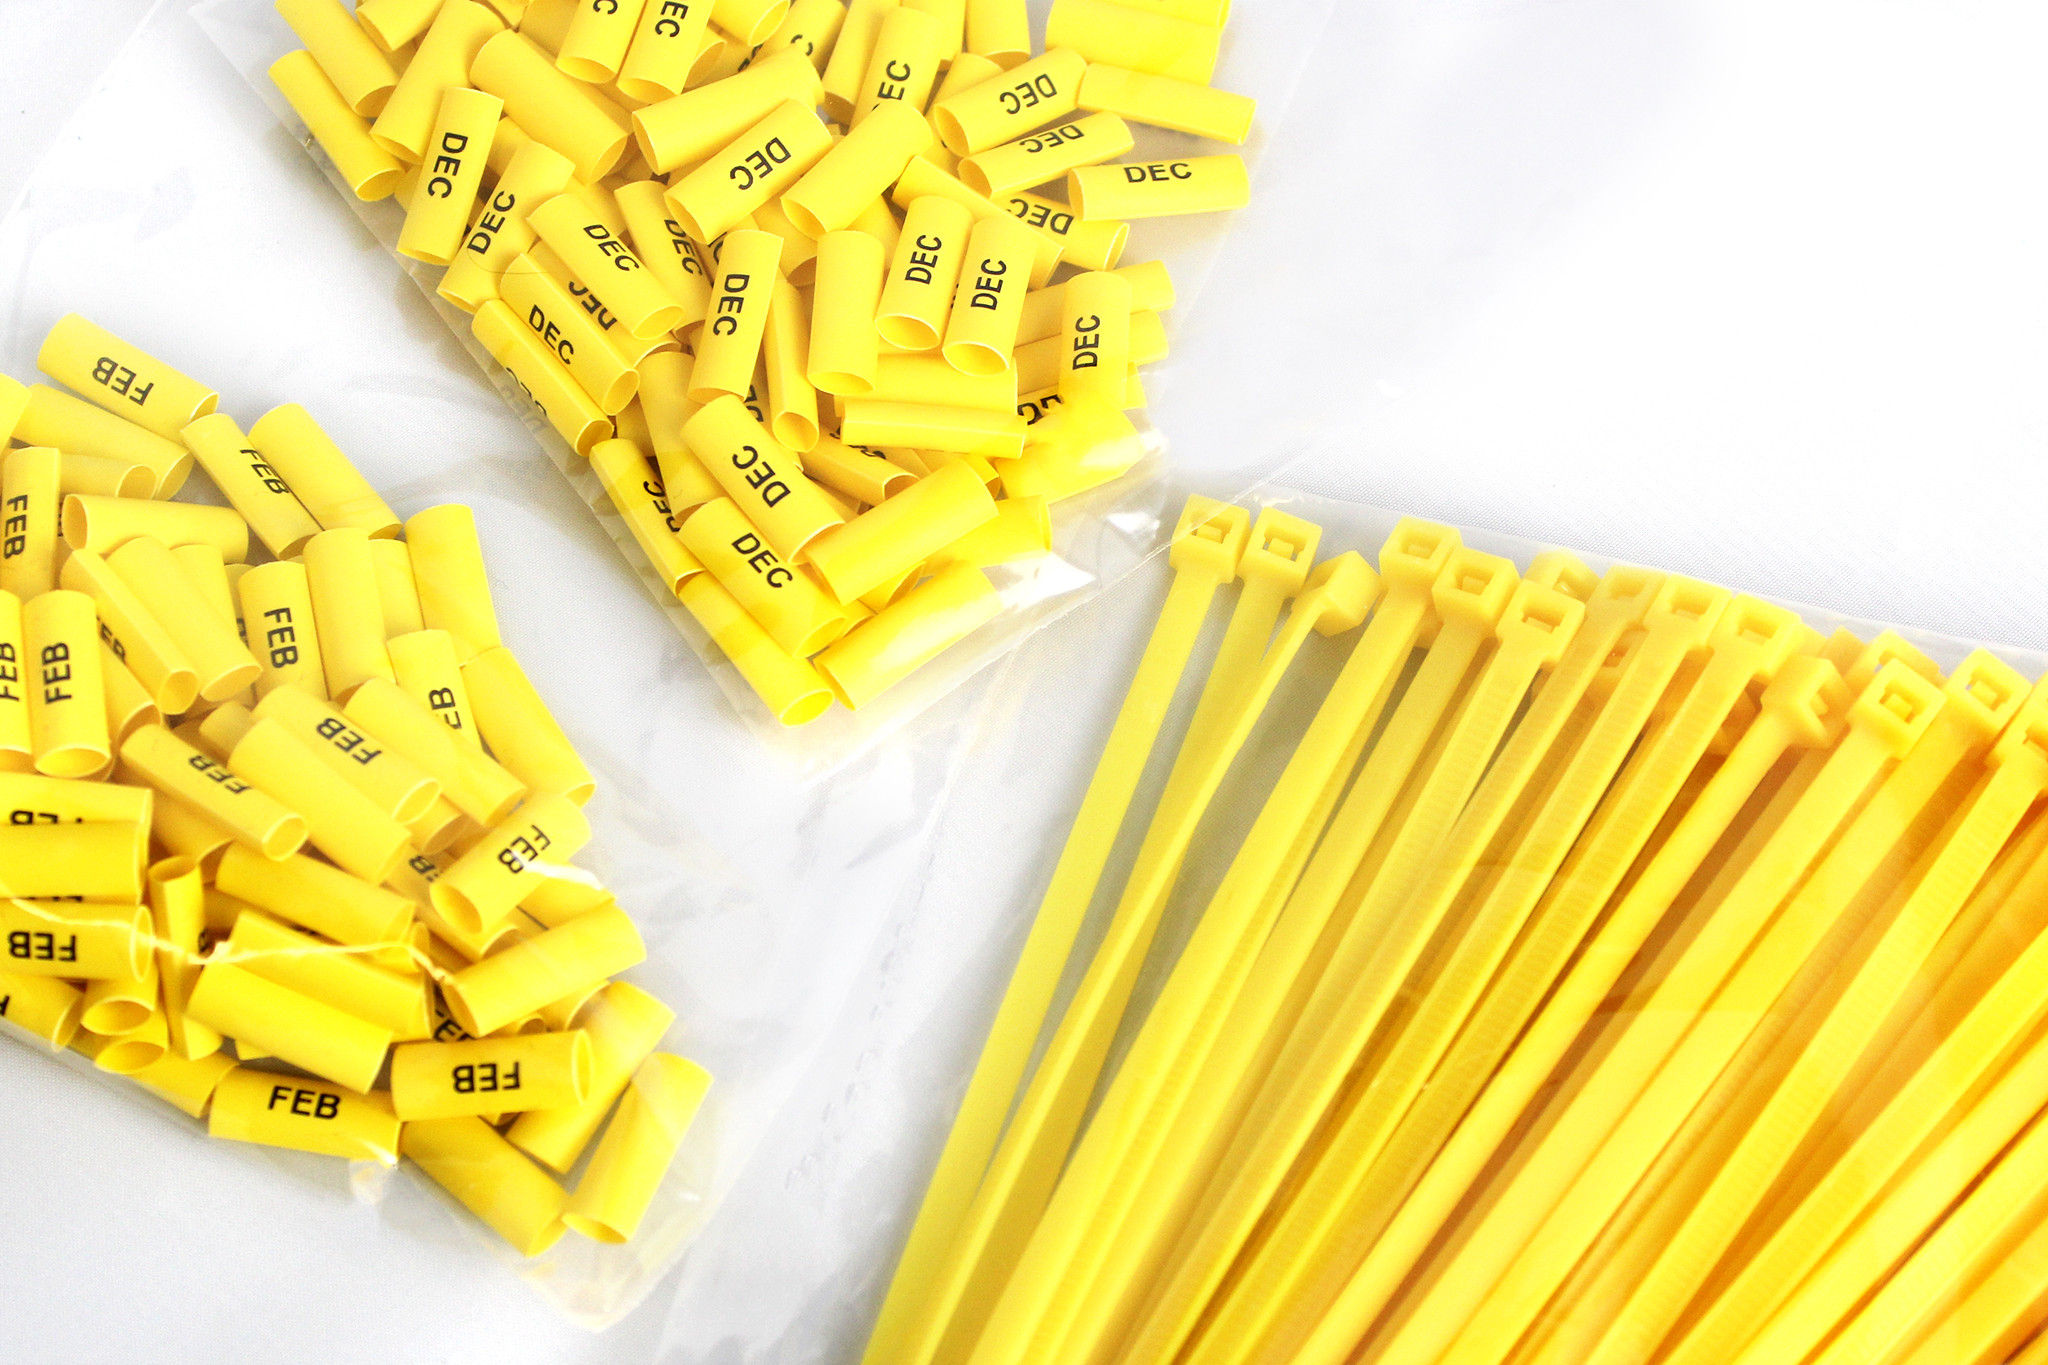 Printed Cable Ties with Months of the Year